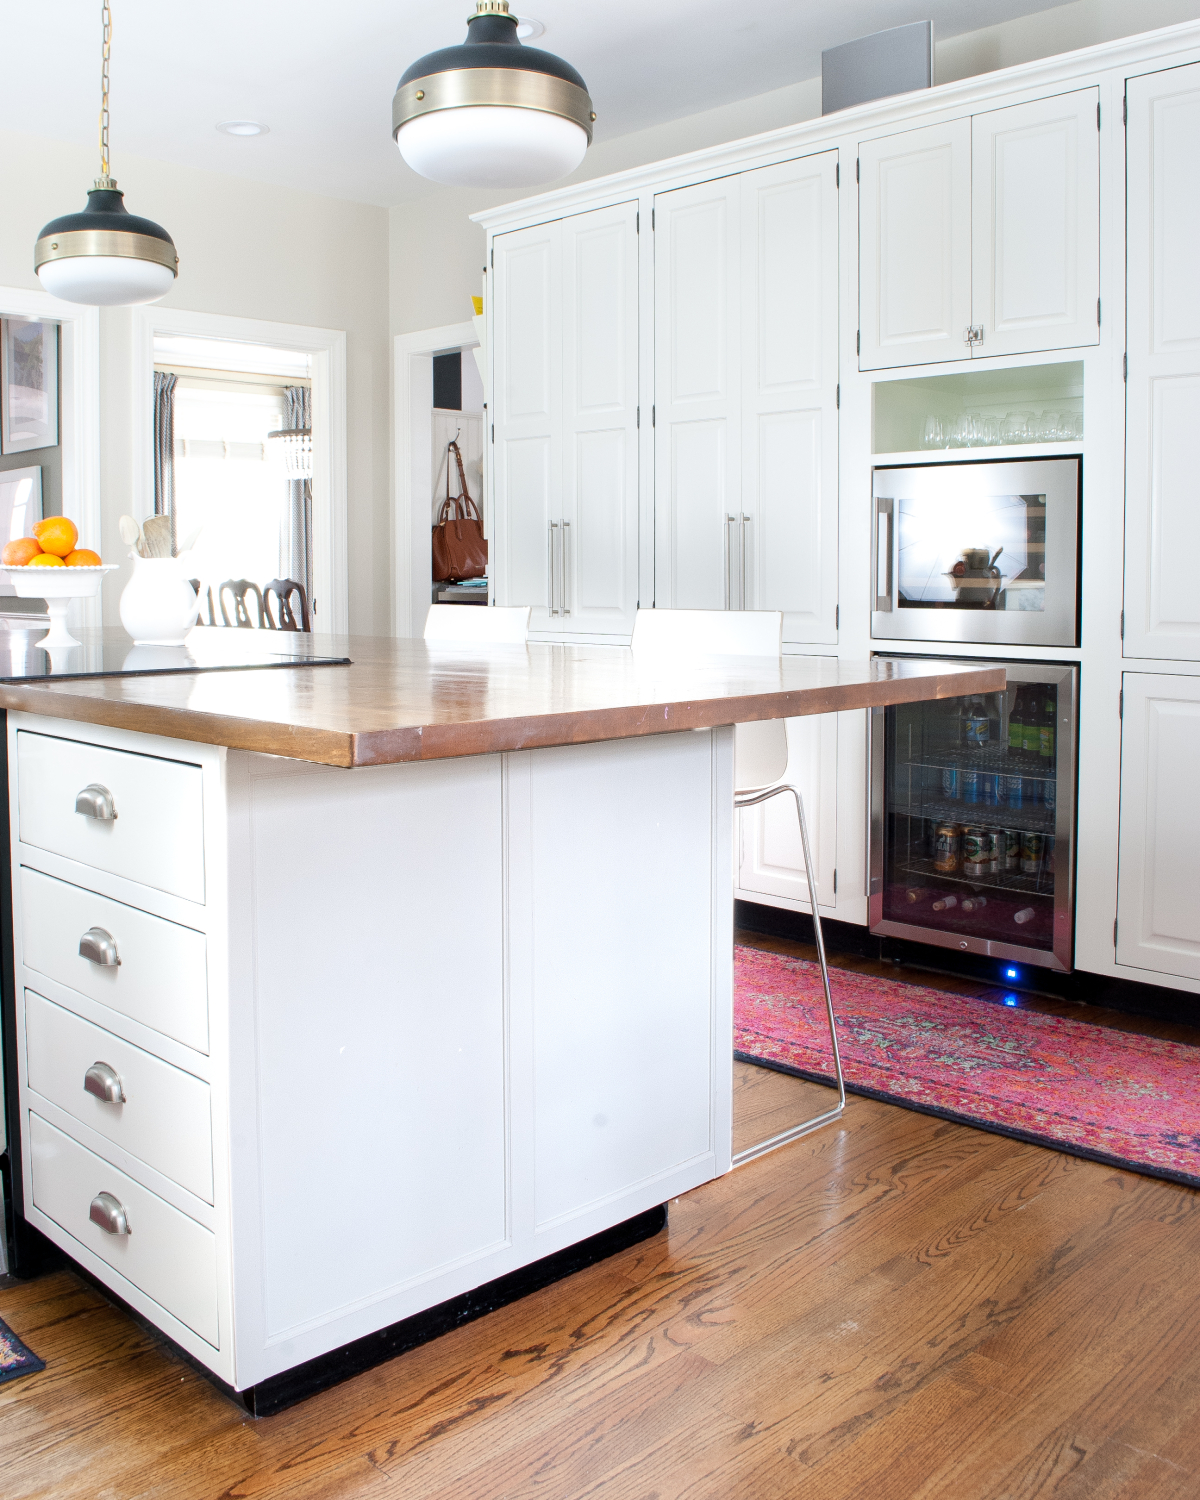 Medium image of how to add trim to a plain kitchen island or plain cabinets for a custom look